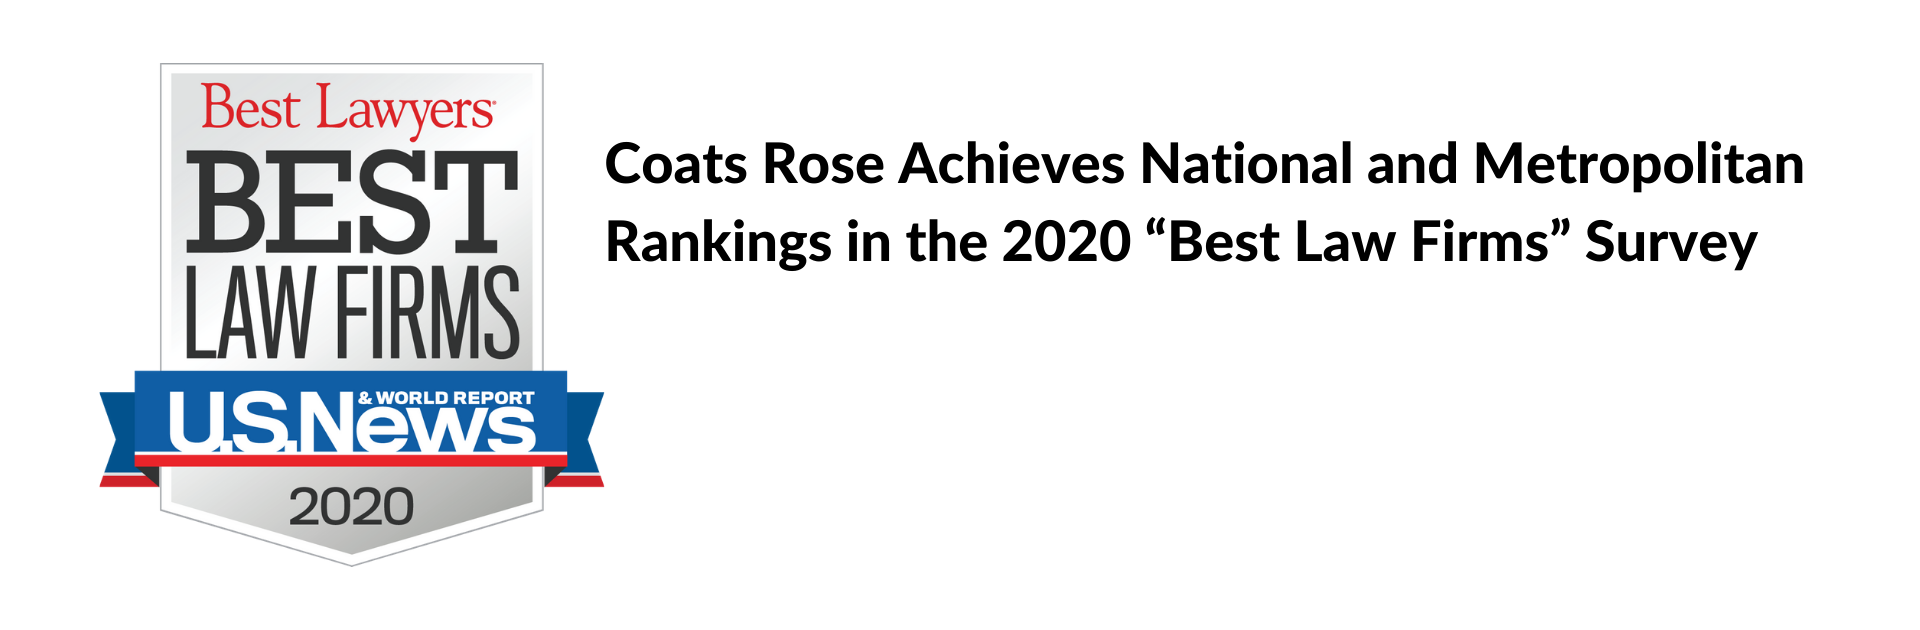 "Coats Rose Achieves National and Metorpolitan Rankings in the 2020 ""Best Law Firms"" Survey by U.S. News & World Report and Best Lawyers®"